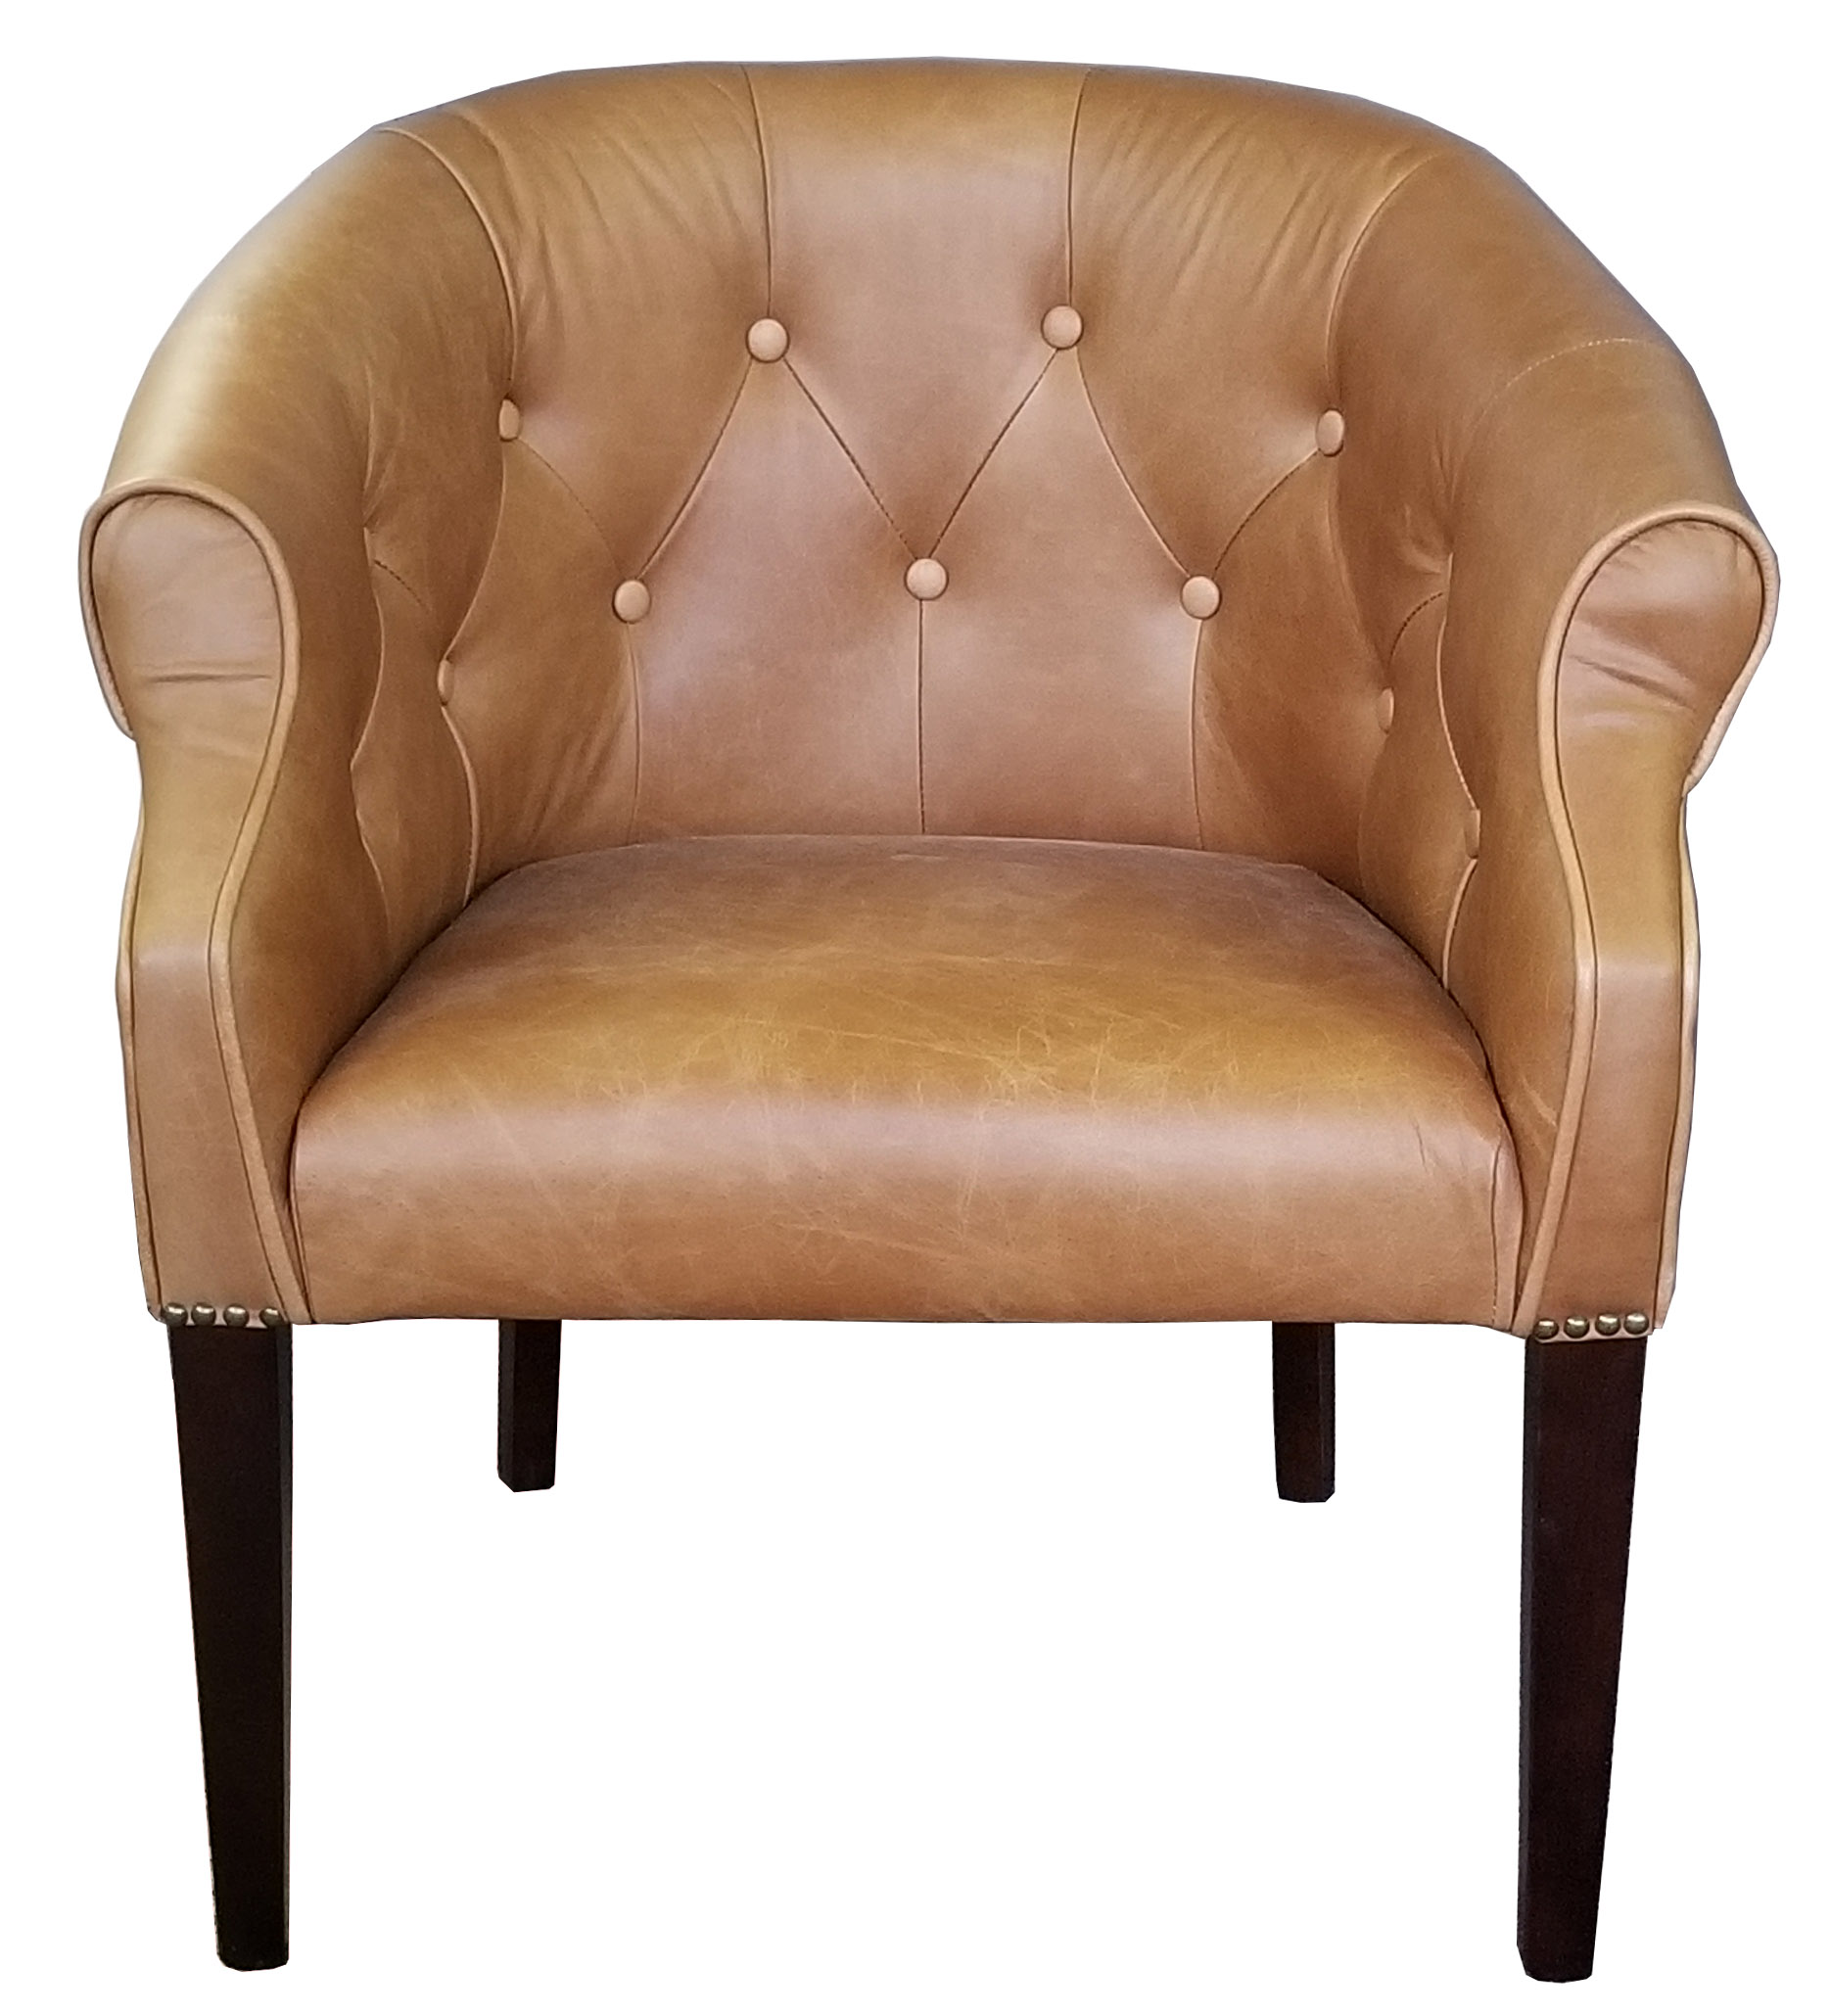 Leather Arm Chairs, Club Chairs & Fabric Chairs :: Leather Tub Chair ...